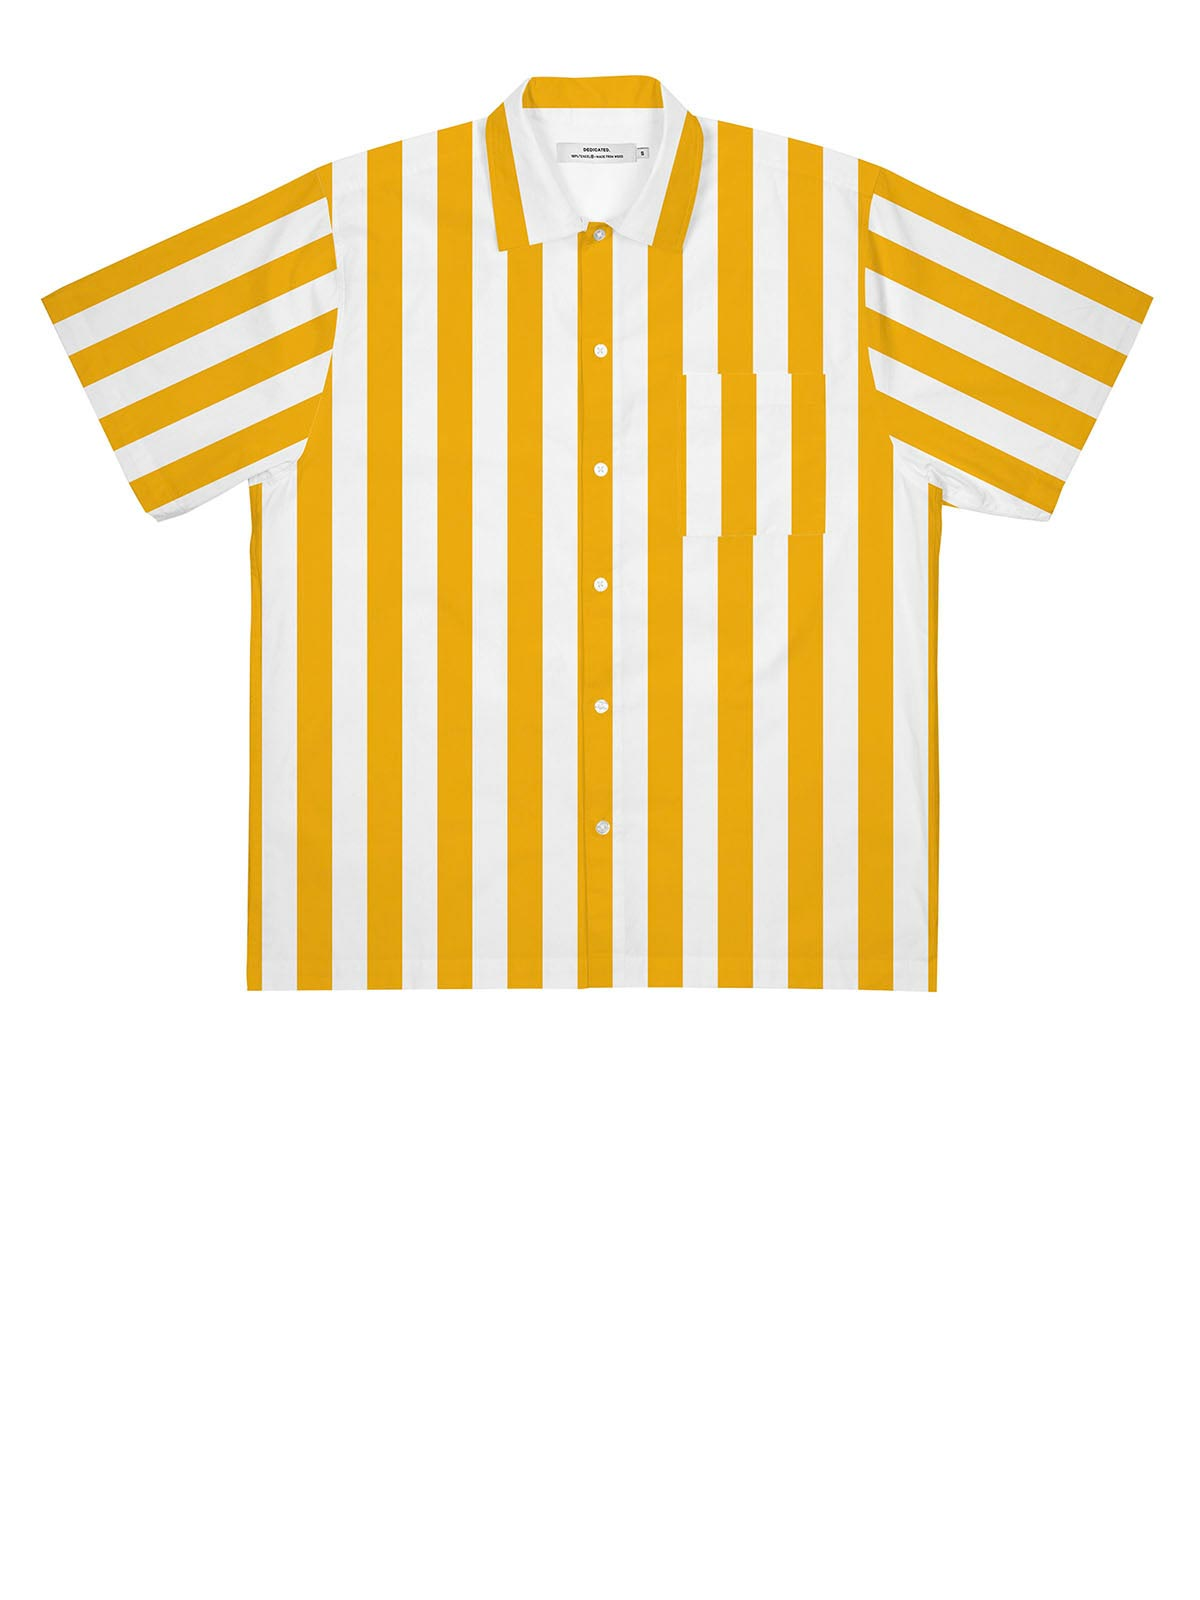 Marstrand Big Stripes - Yellow - Revenge Utrecht